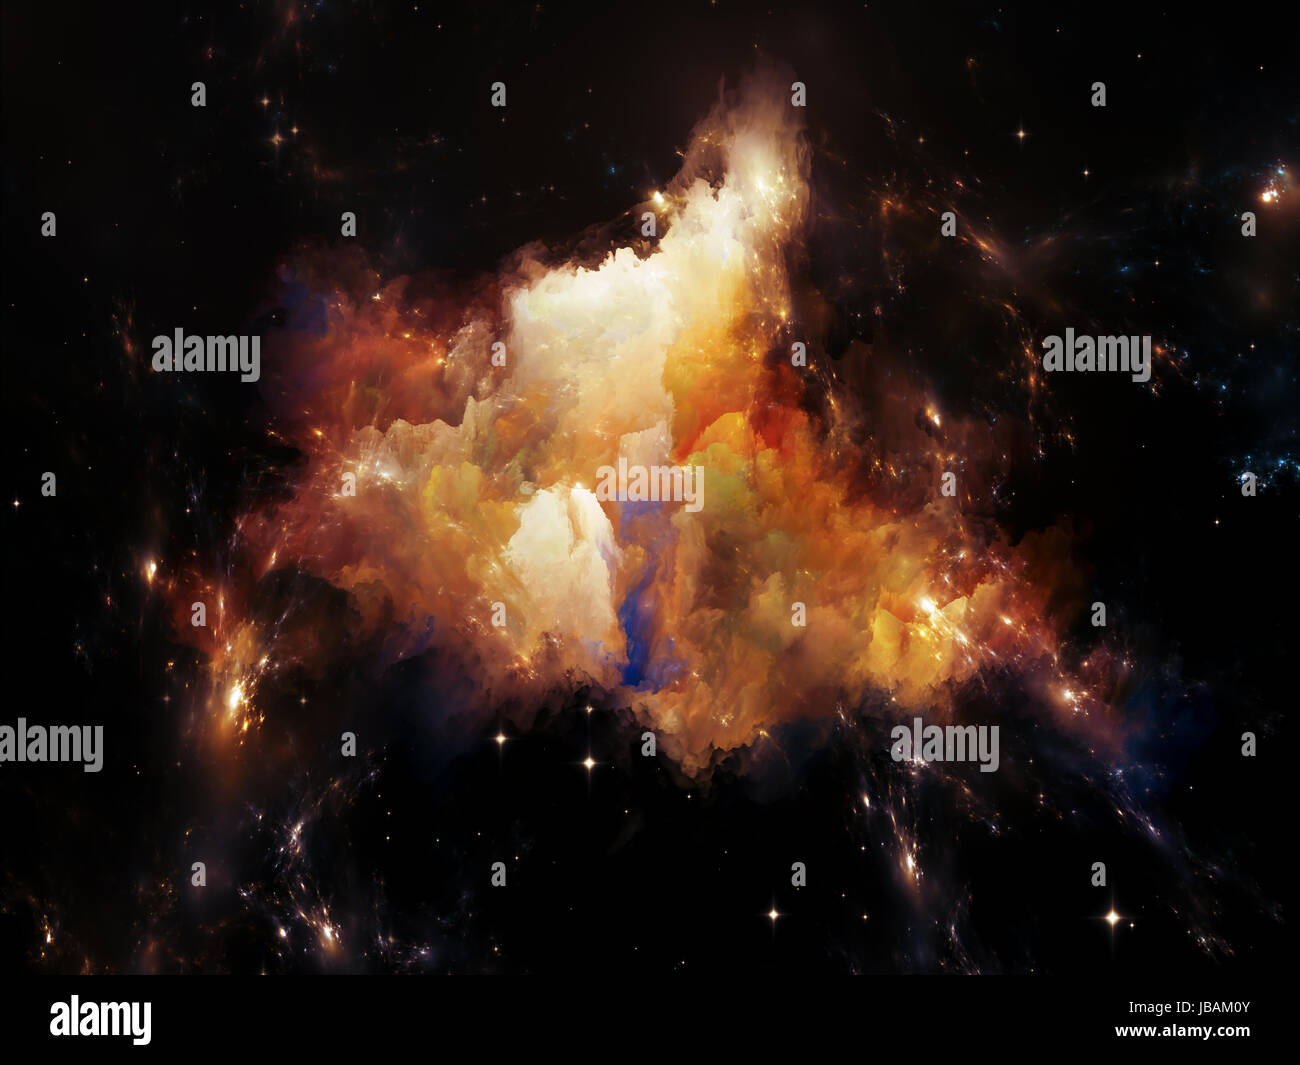 Universe Is Not Enough series. Composition of fractal elements, lights and textures with metaphorical relationship - Stock Image